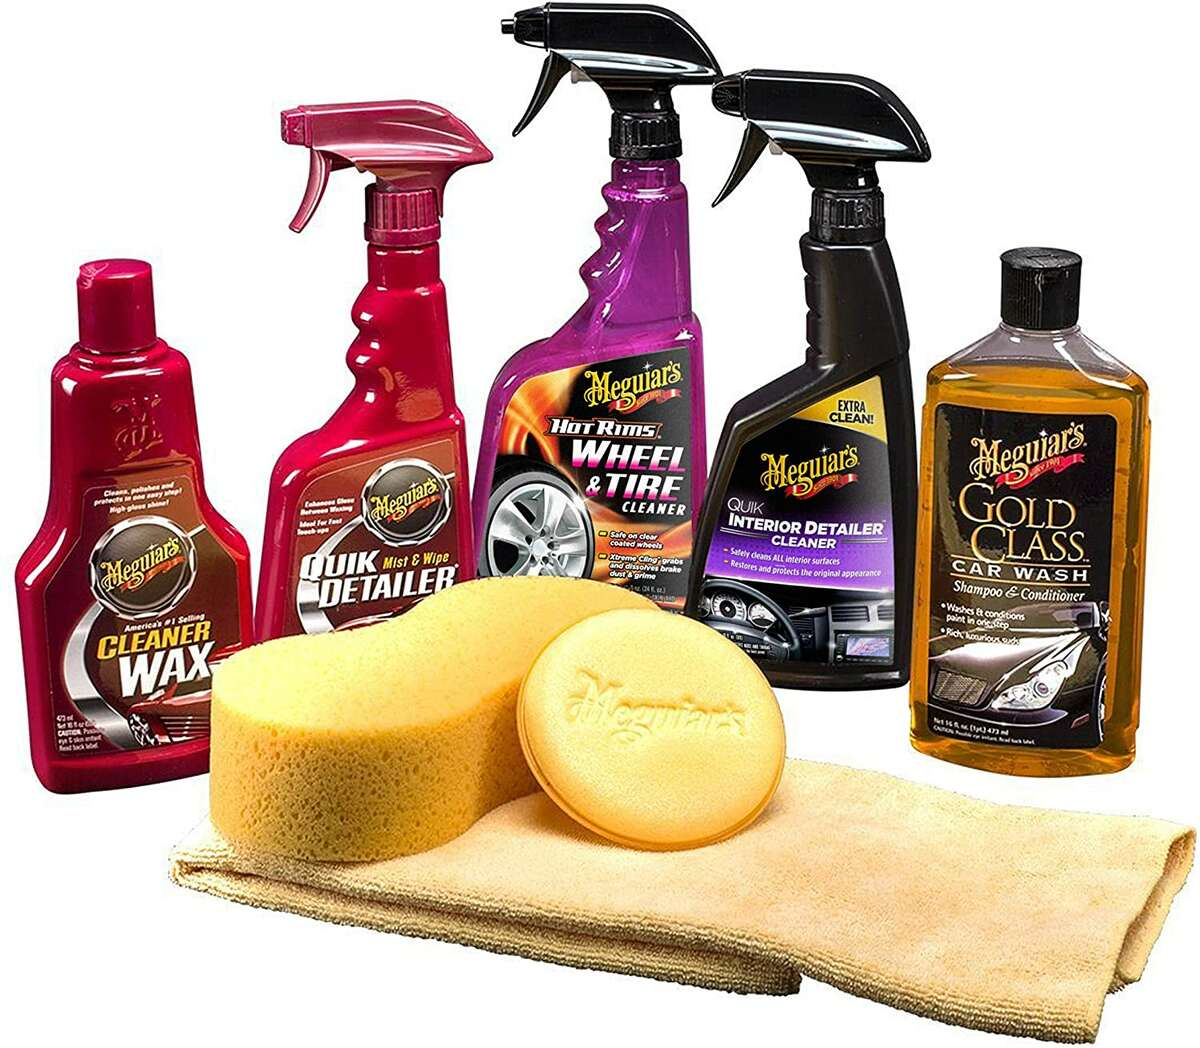 Meguiar's Classic Wash and Wax kit is comprehensive.